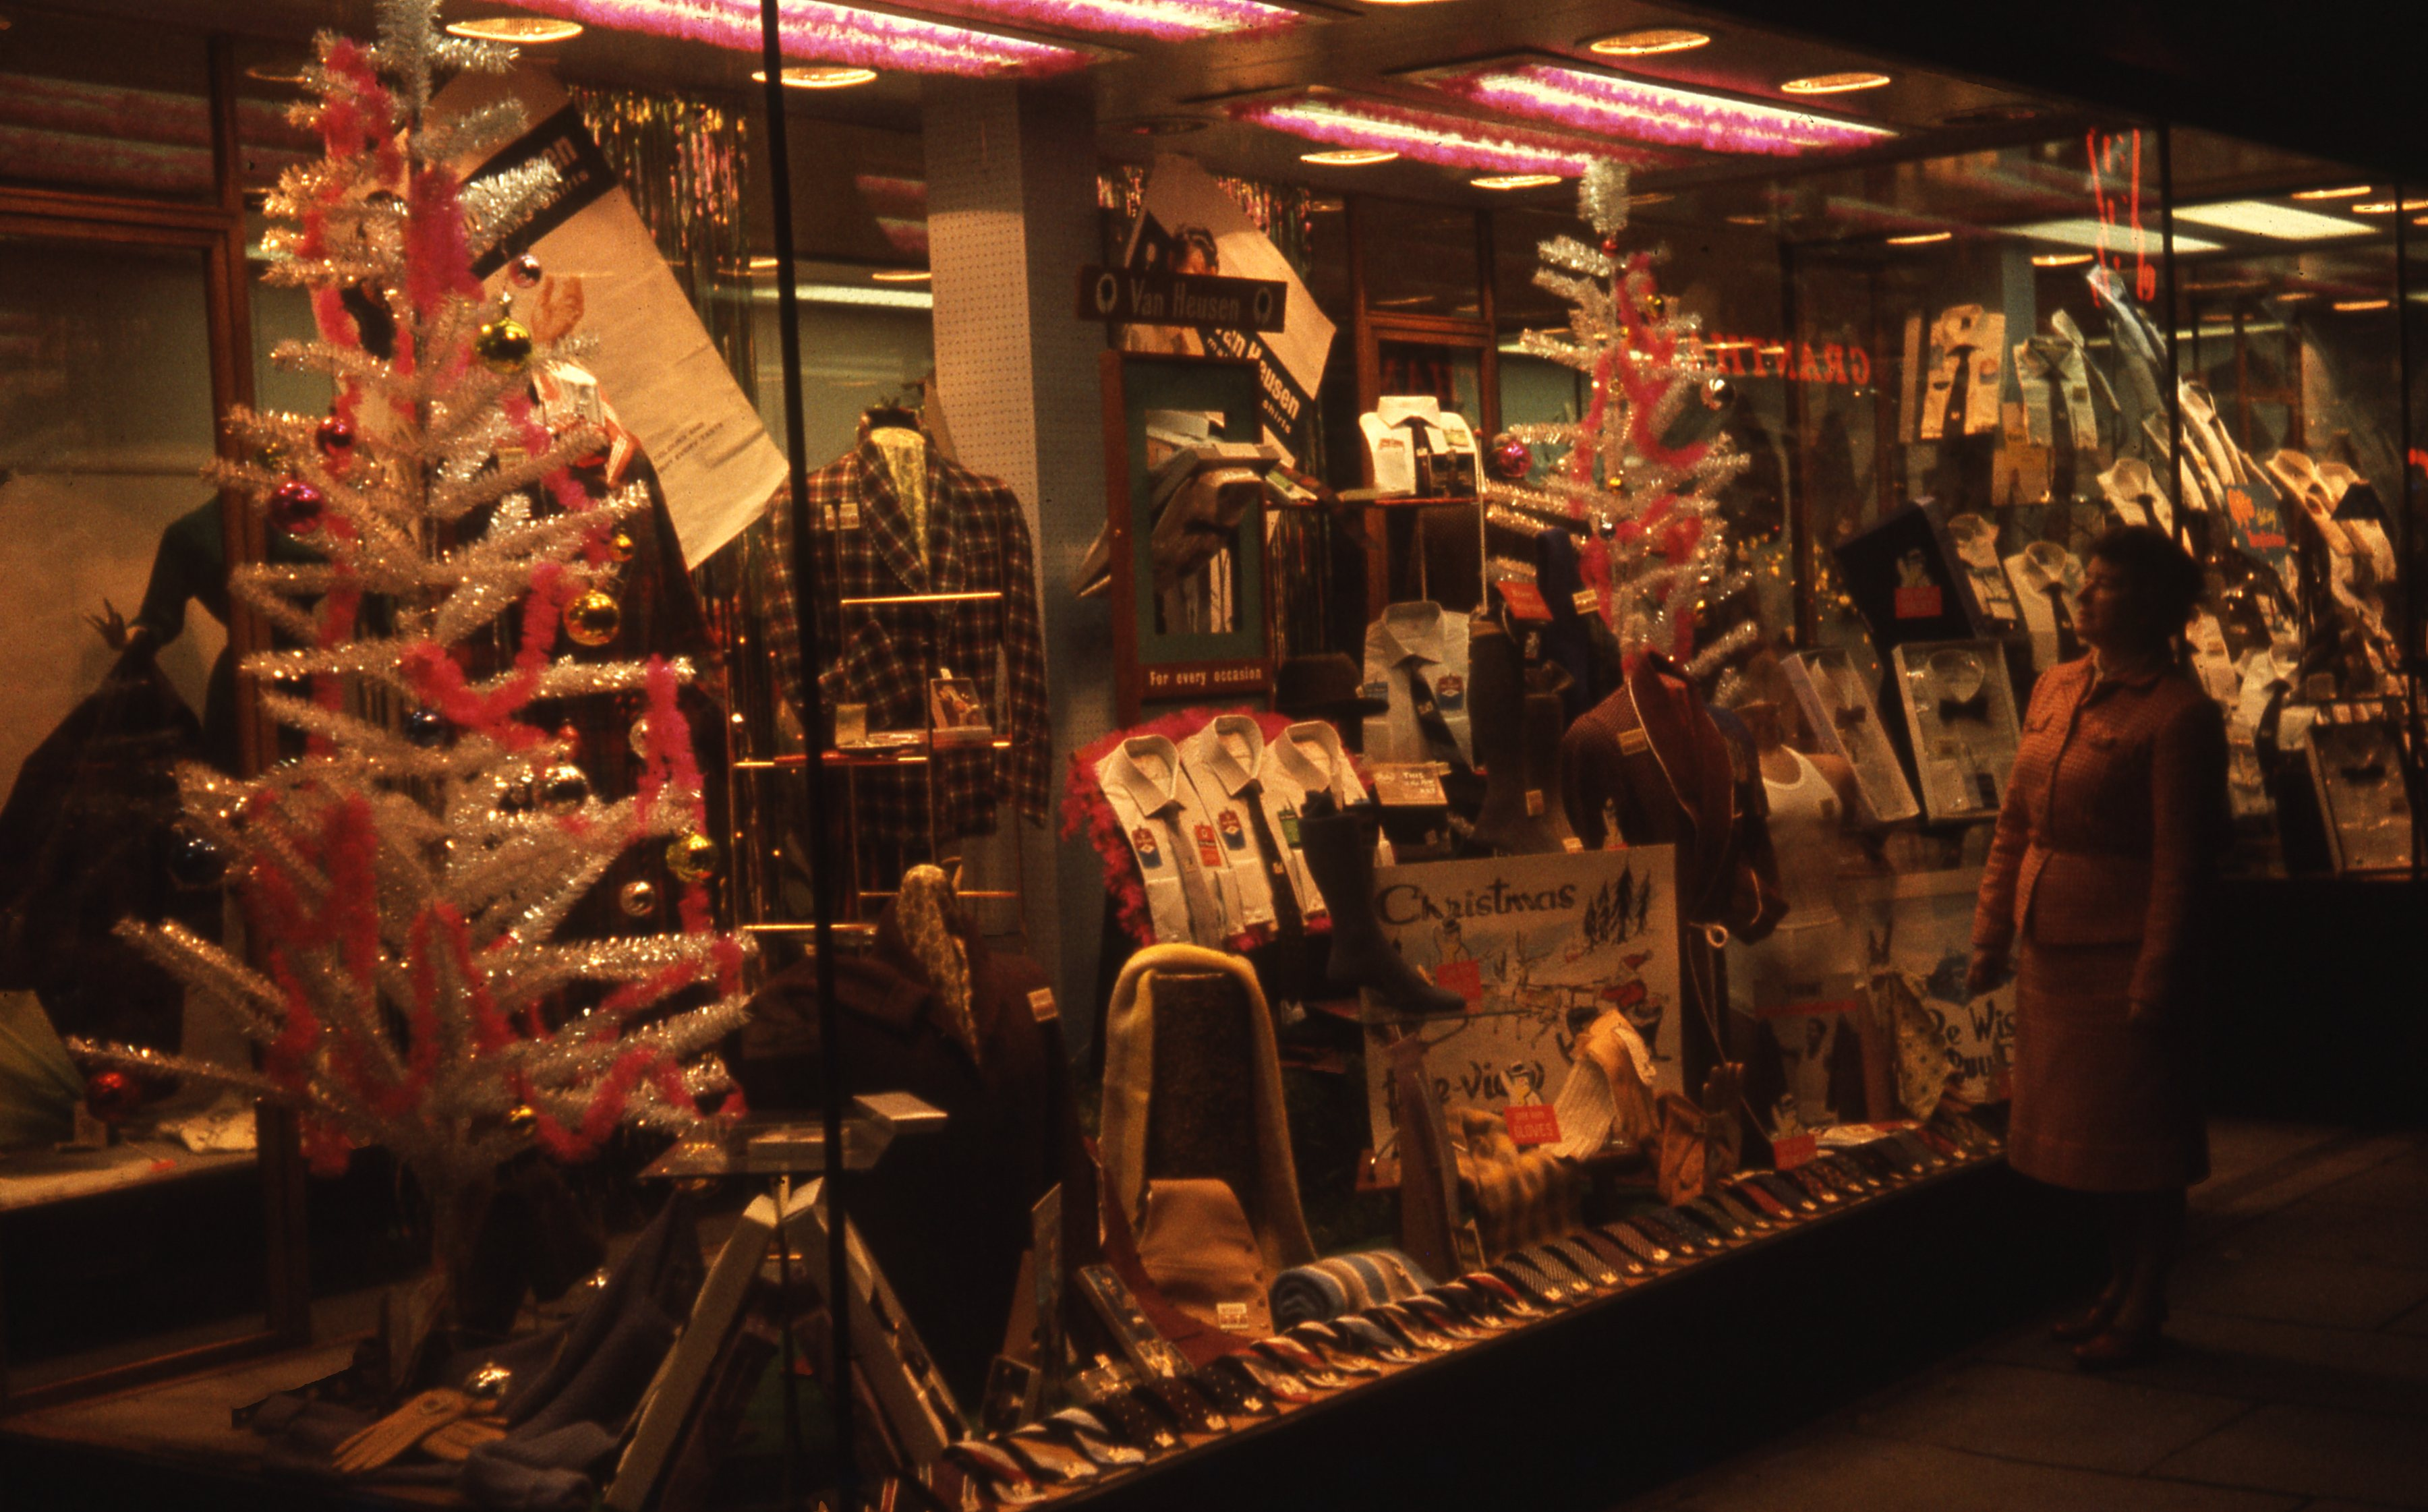 This is the decorated Christmas window of the Woods store in South Shields. This is a 35mm slide. It was taken in 1962.